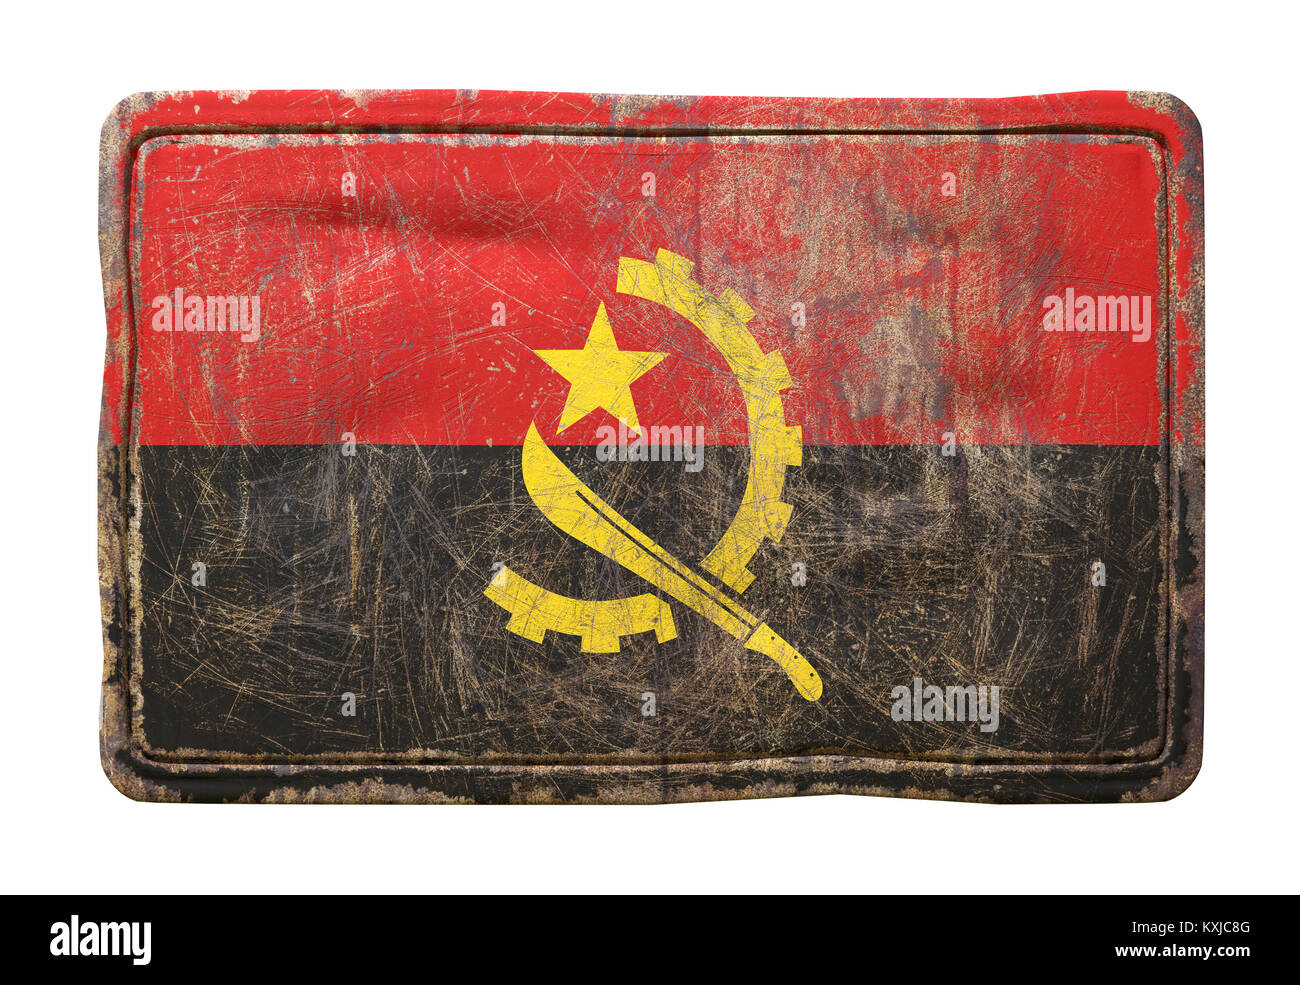 3d rendering of a Republic of Angola flag over a rusty metallic plate. Isolated on white background. - Stock Image